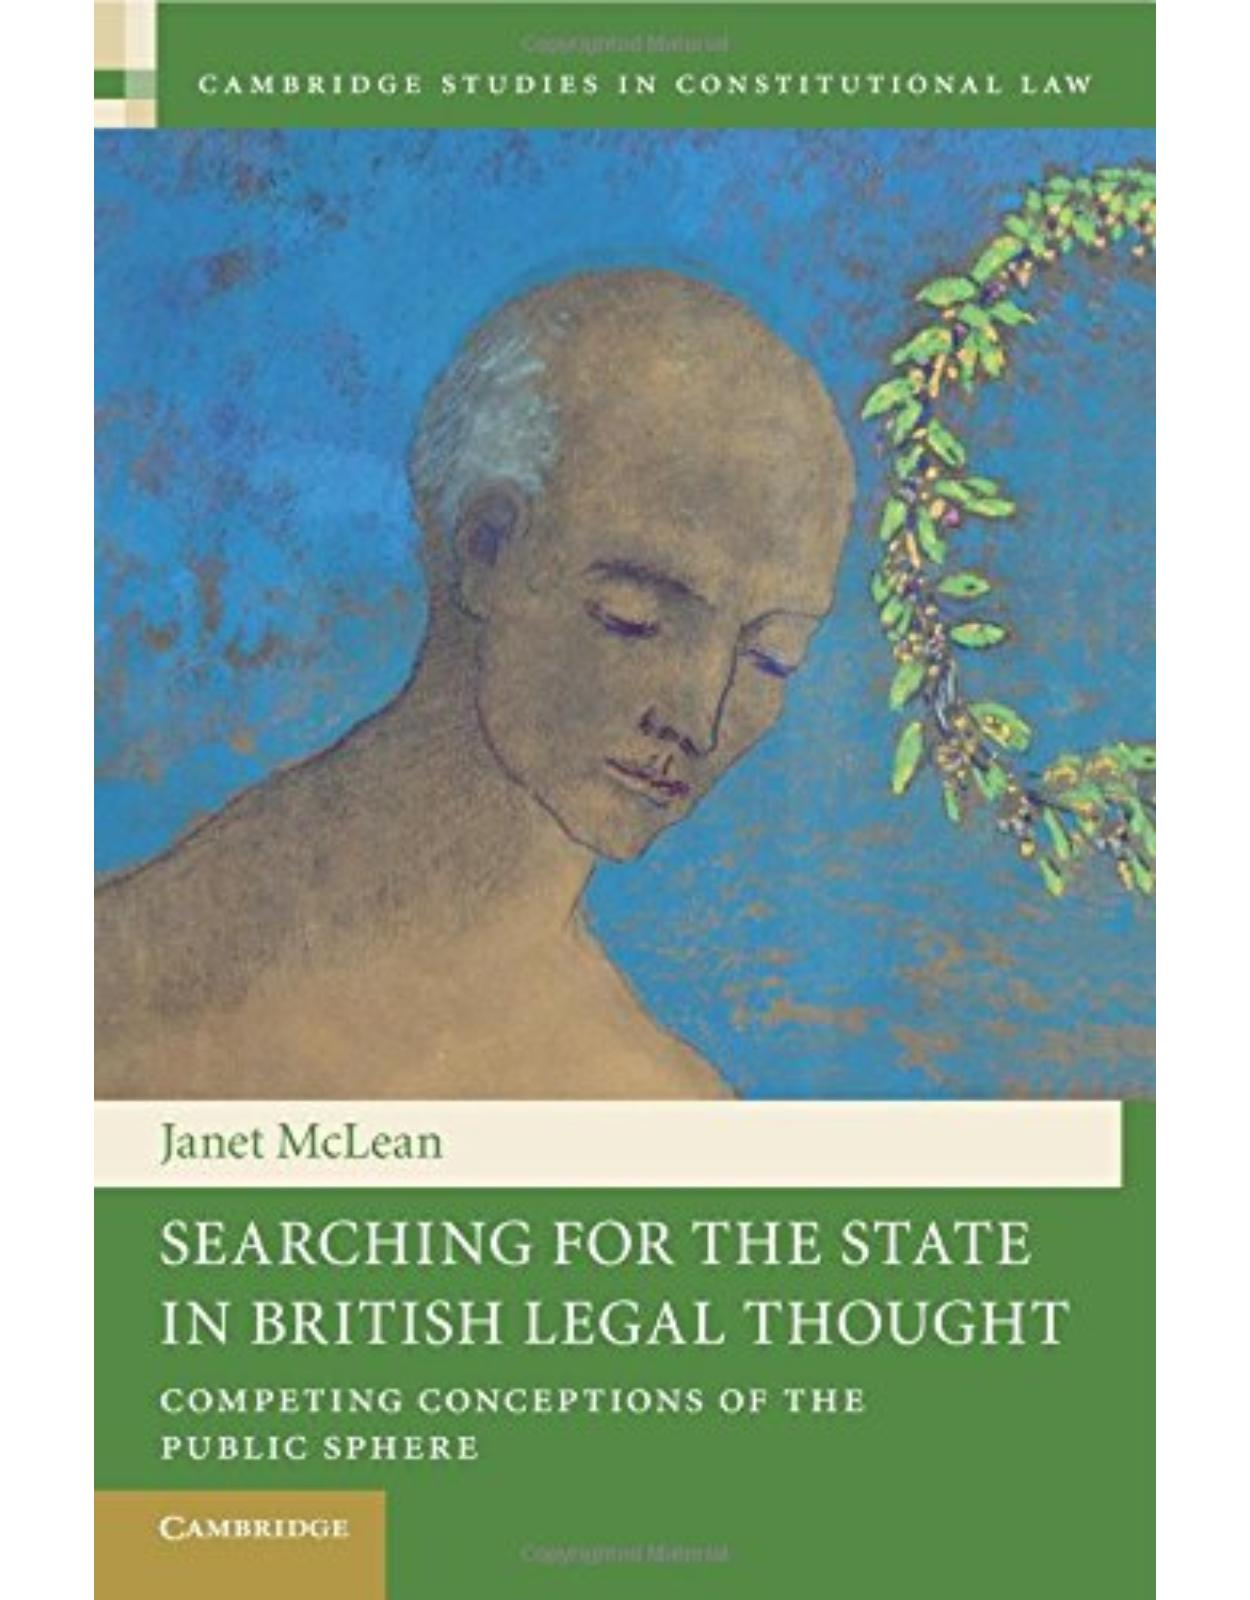 Searching for the State in British Legal Thought: Competing Conceptions of the Public Sphere (Cambridge Studies in Constitutional Law)